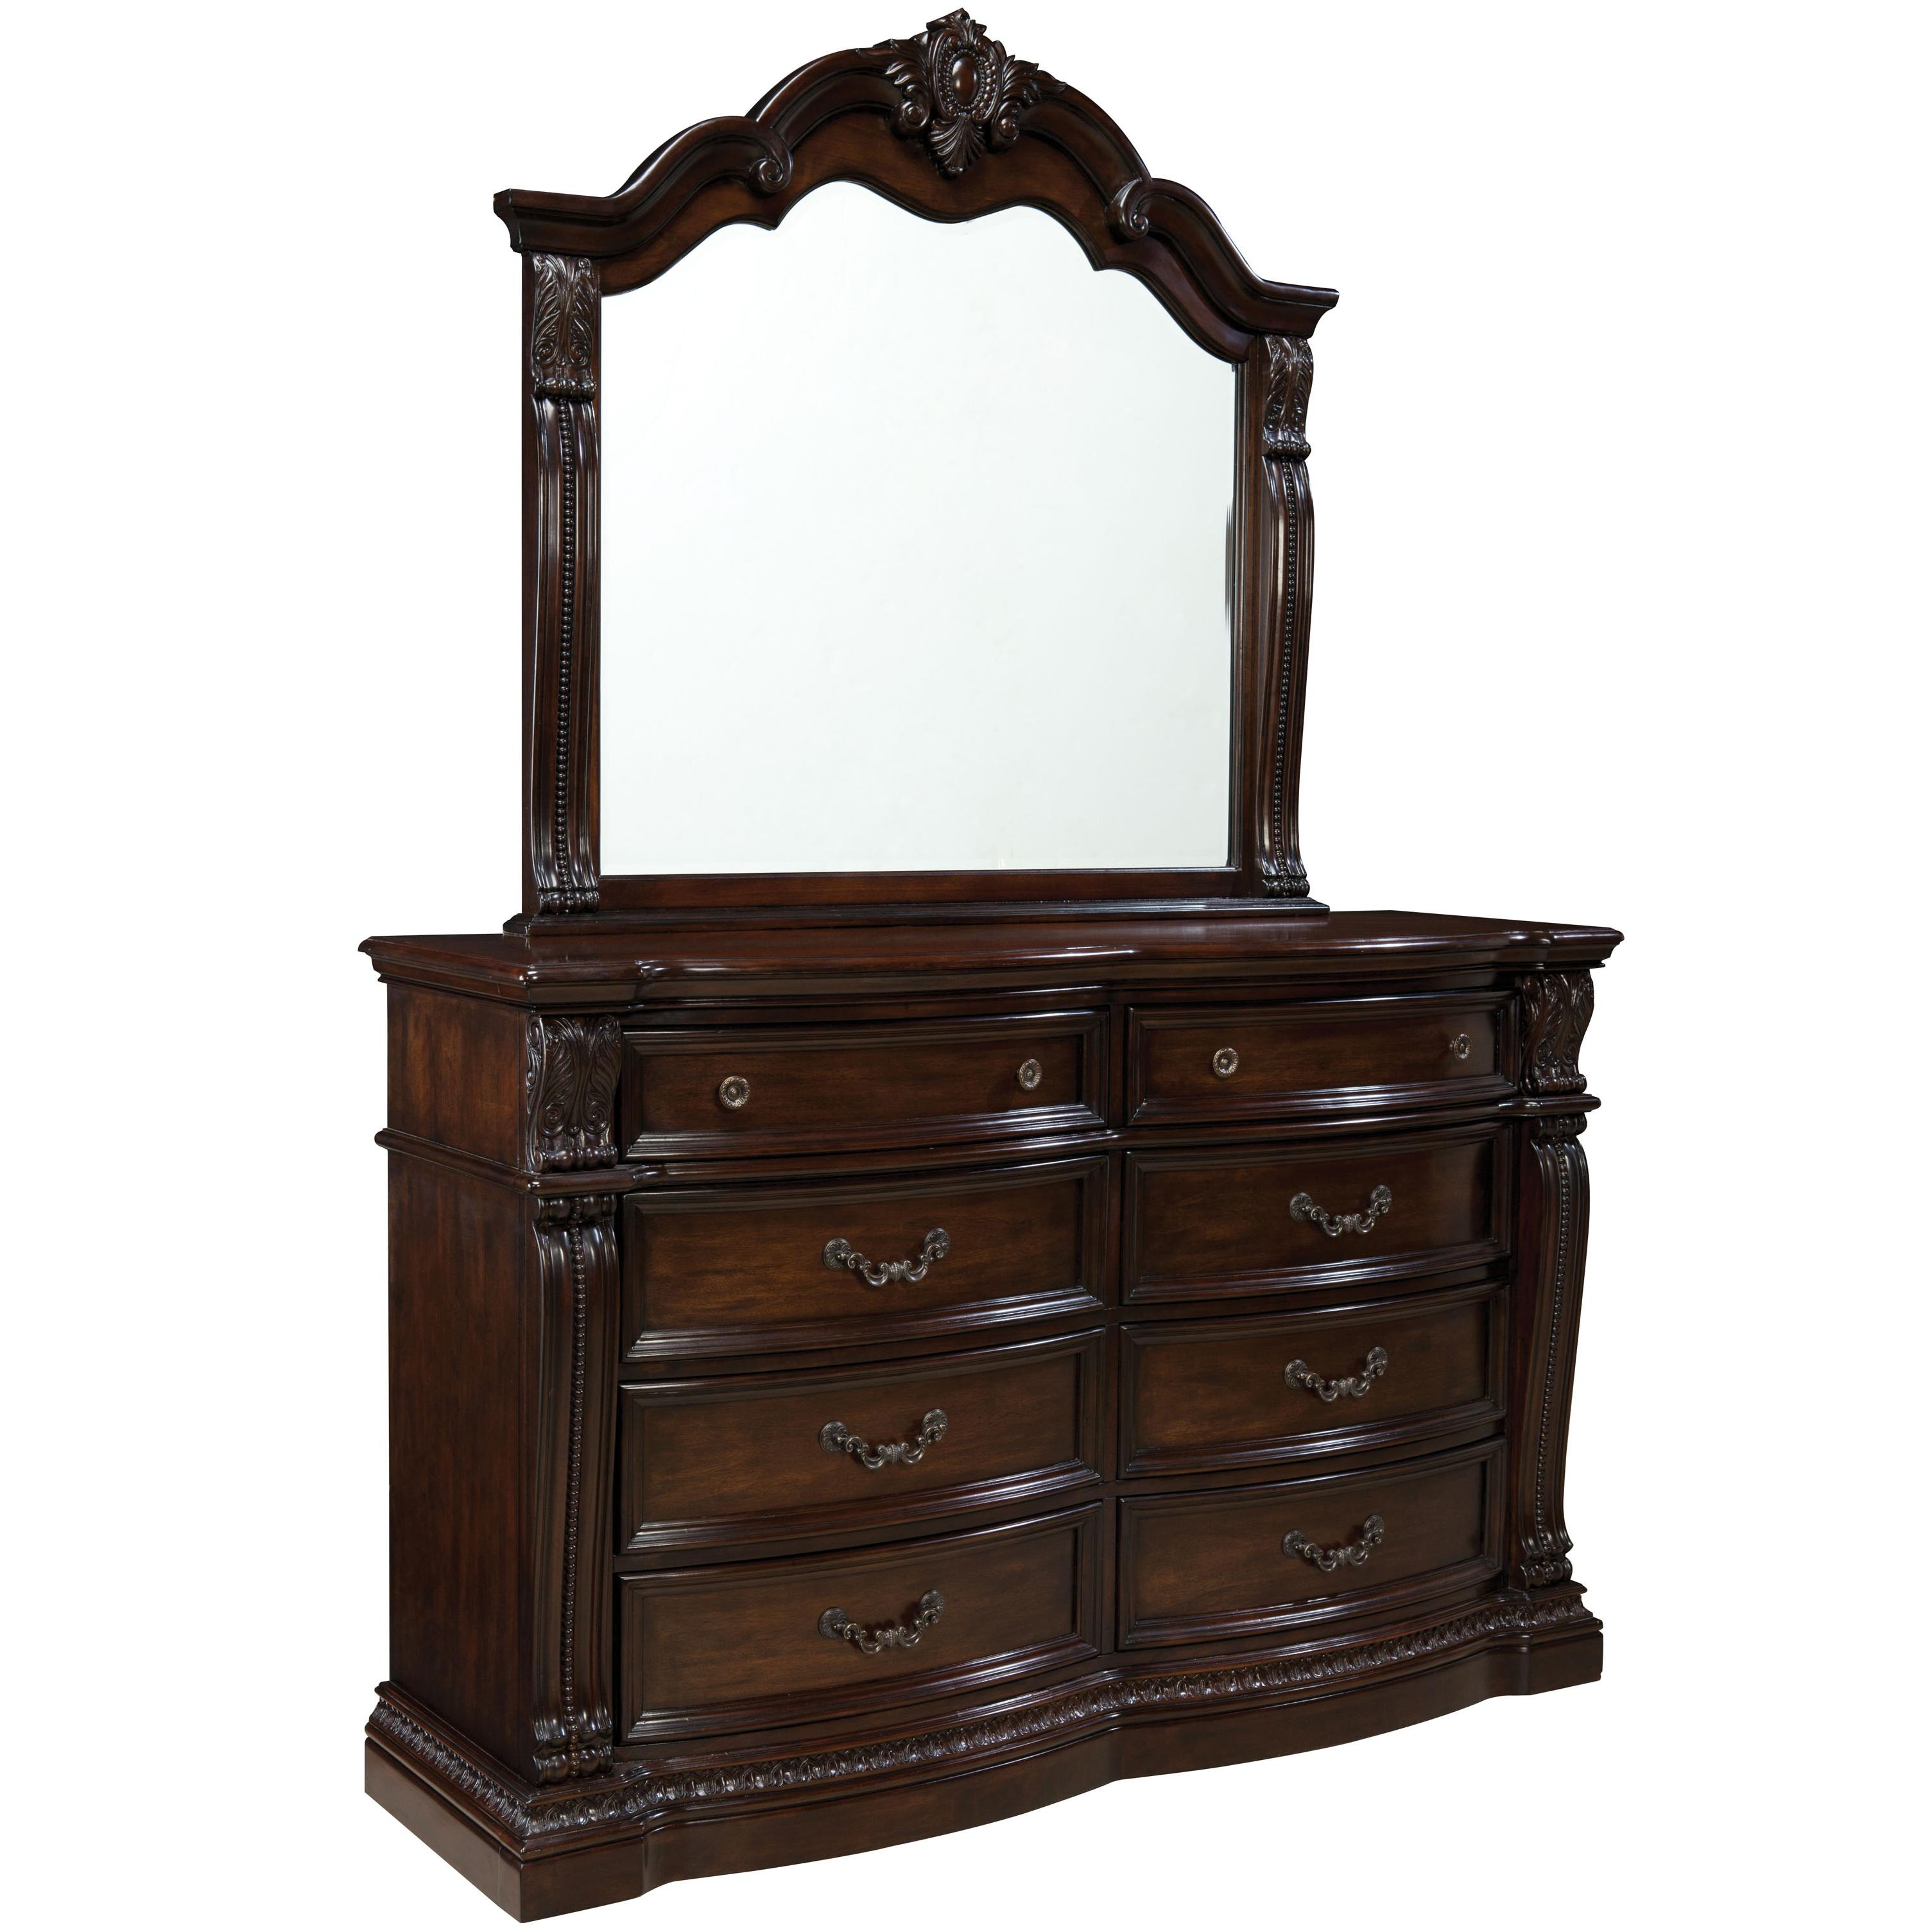 Standard Furniture Churchill  Dresser with Mirror - Item Number: 86009+86008